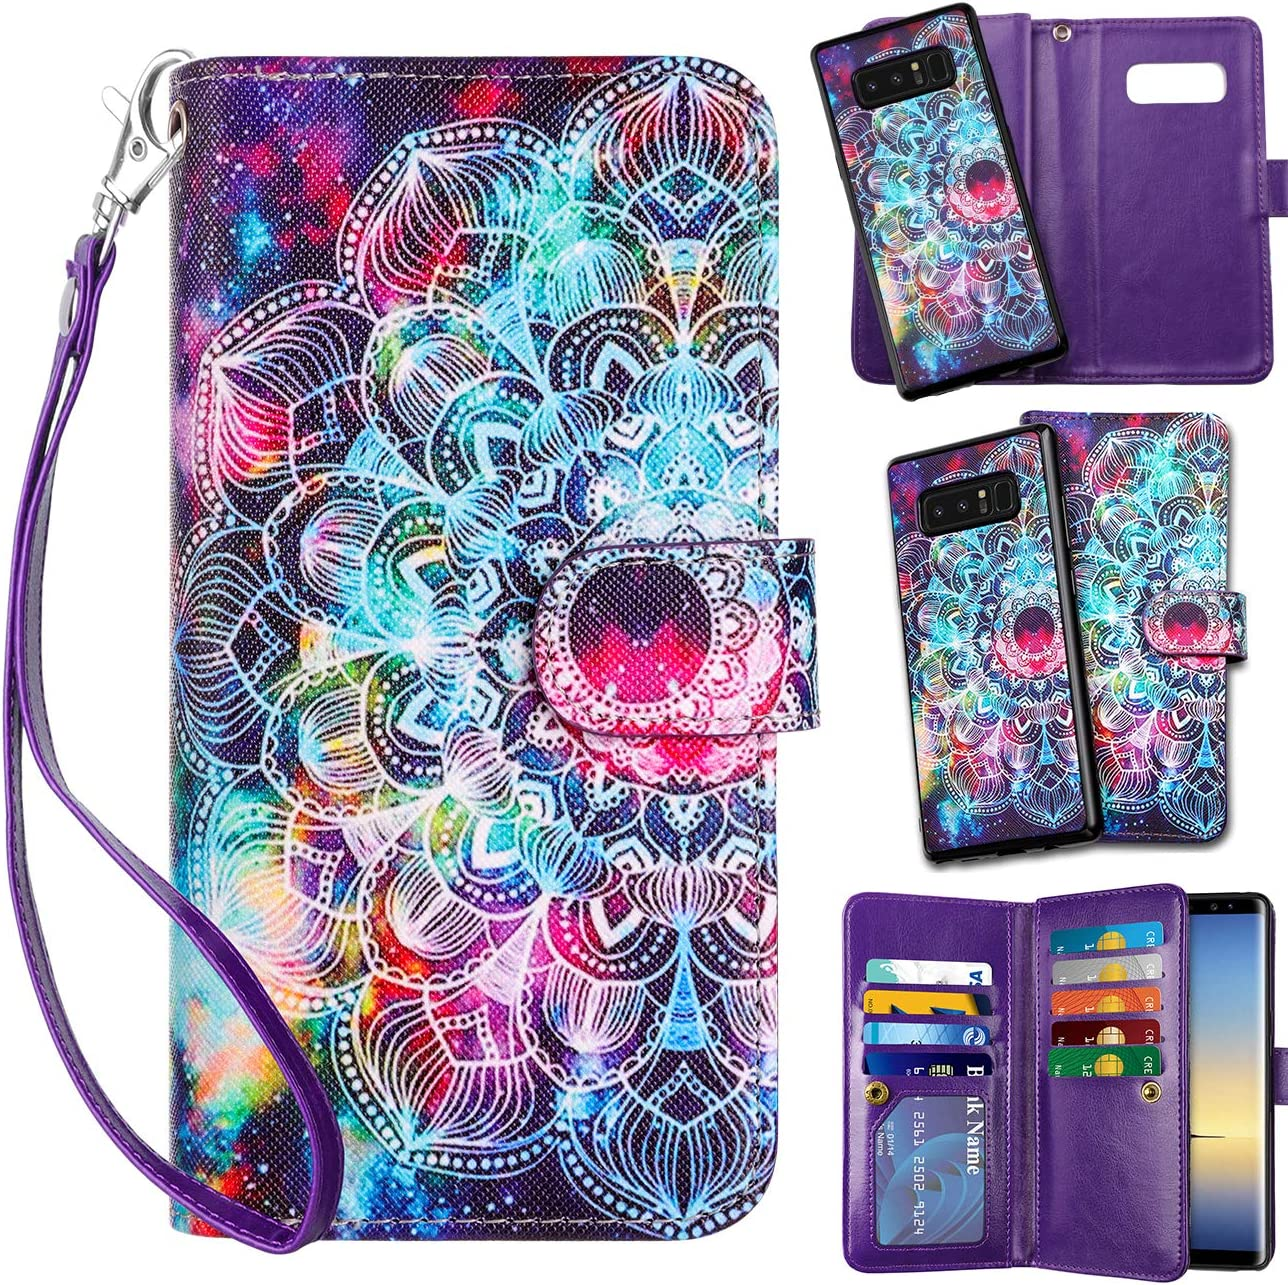 Vofolen 2-in-1 Case for Galaxy Note 8 Case Wallet Card Holder ID Slot Detachable Strap Hybrid Protective Slim Hard Shell Magnetic PU Leather Folio Pocket Flip Cover Case for Galaxy Note 8 Mandala